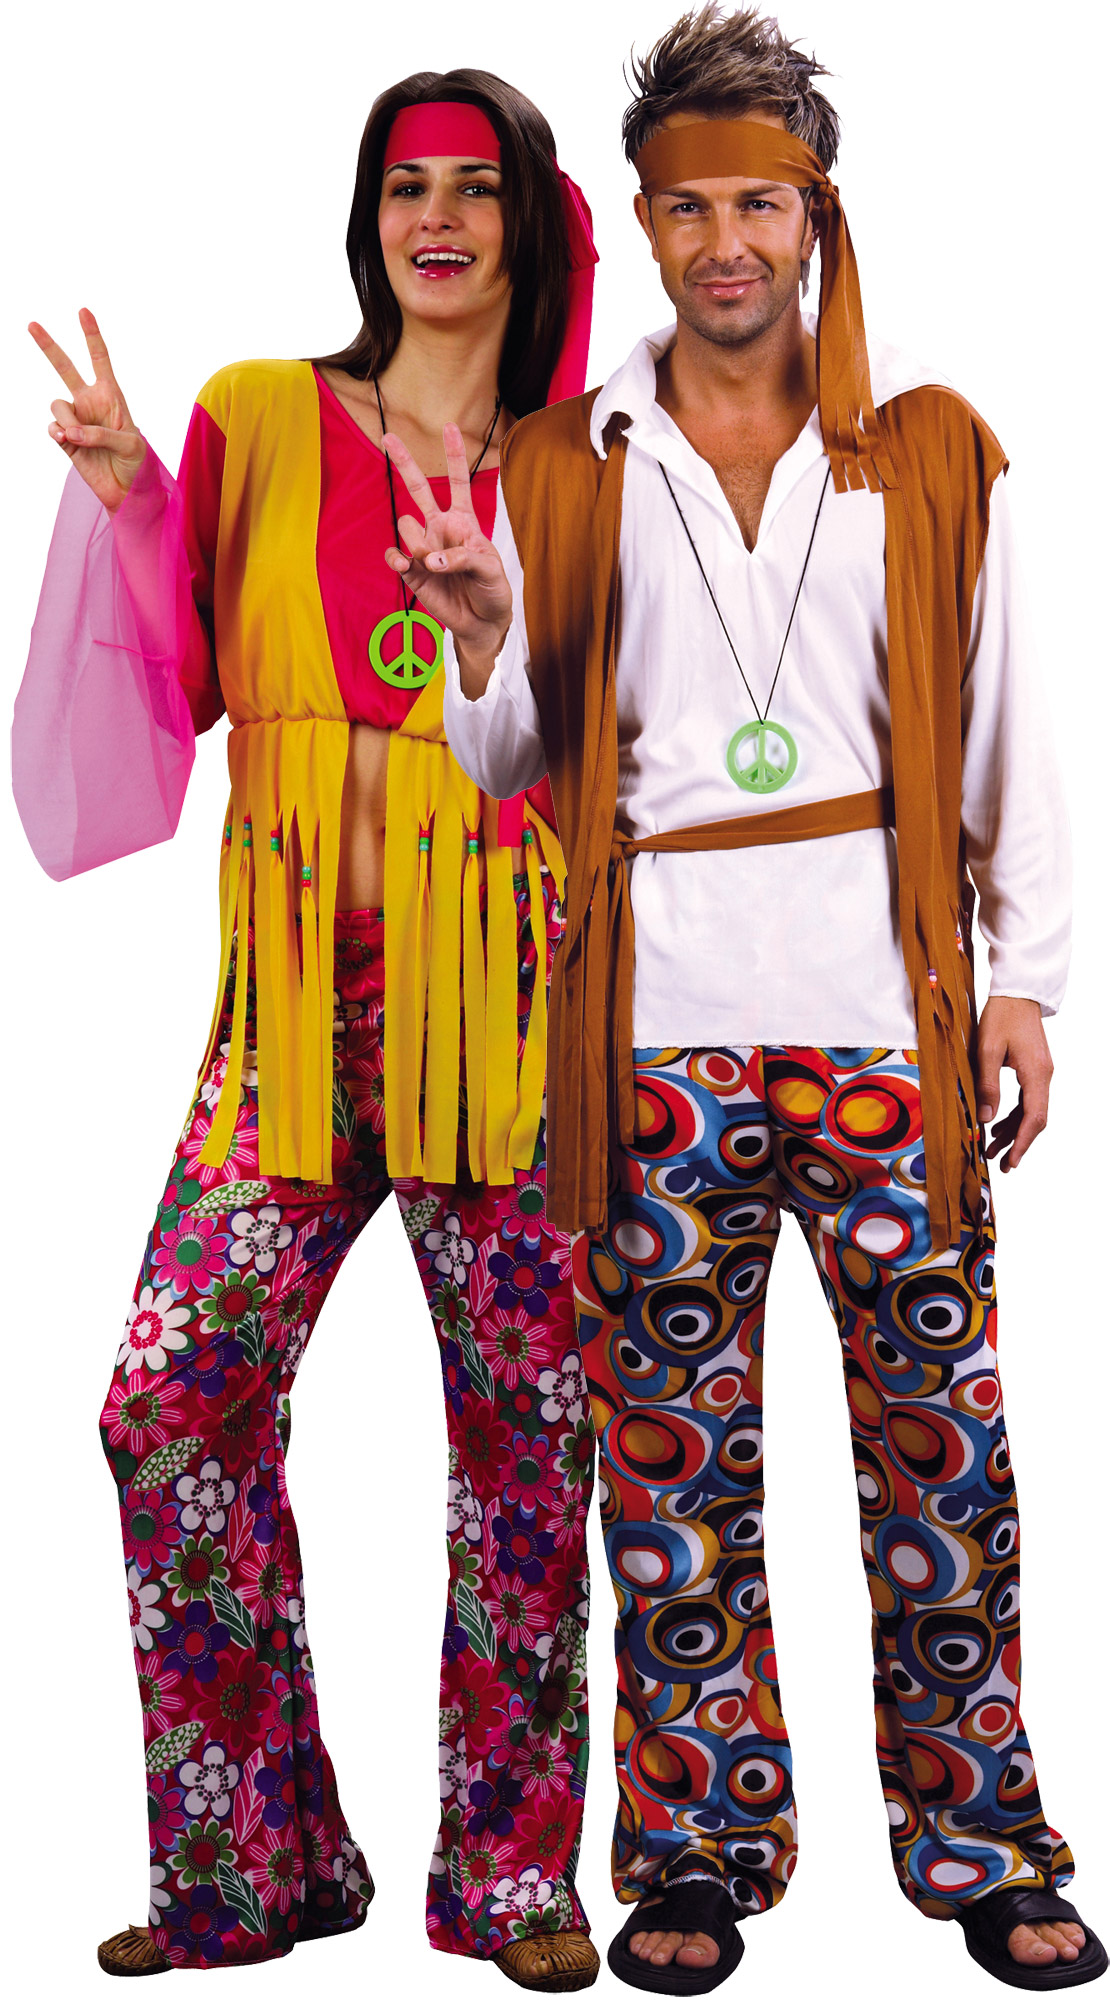 d guisement couple hippie d guisement couple baba cool costume carnaval pas cher. Black Bedroom Furniture Sets. Home Design Ideas